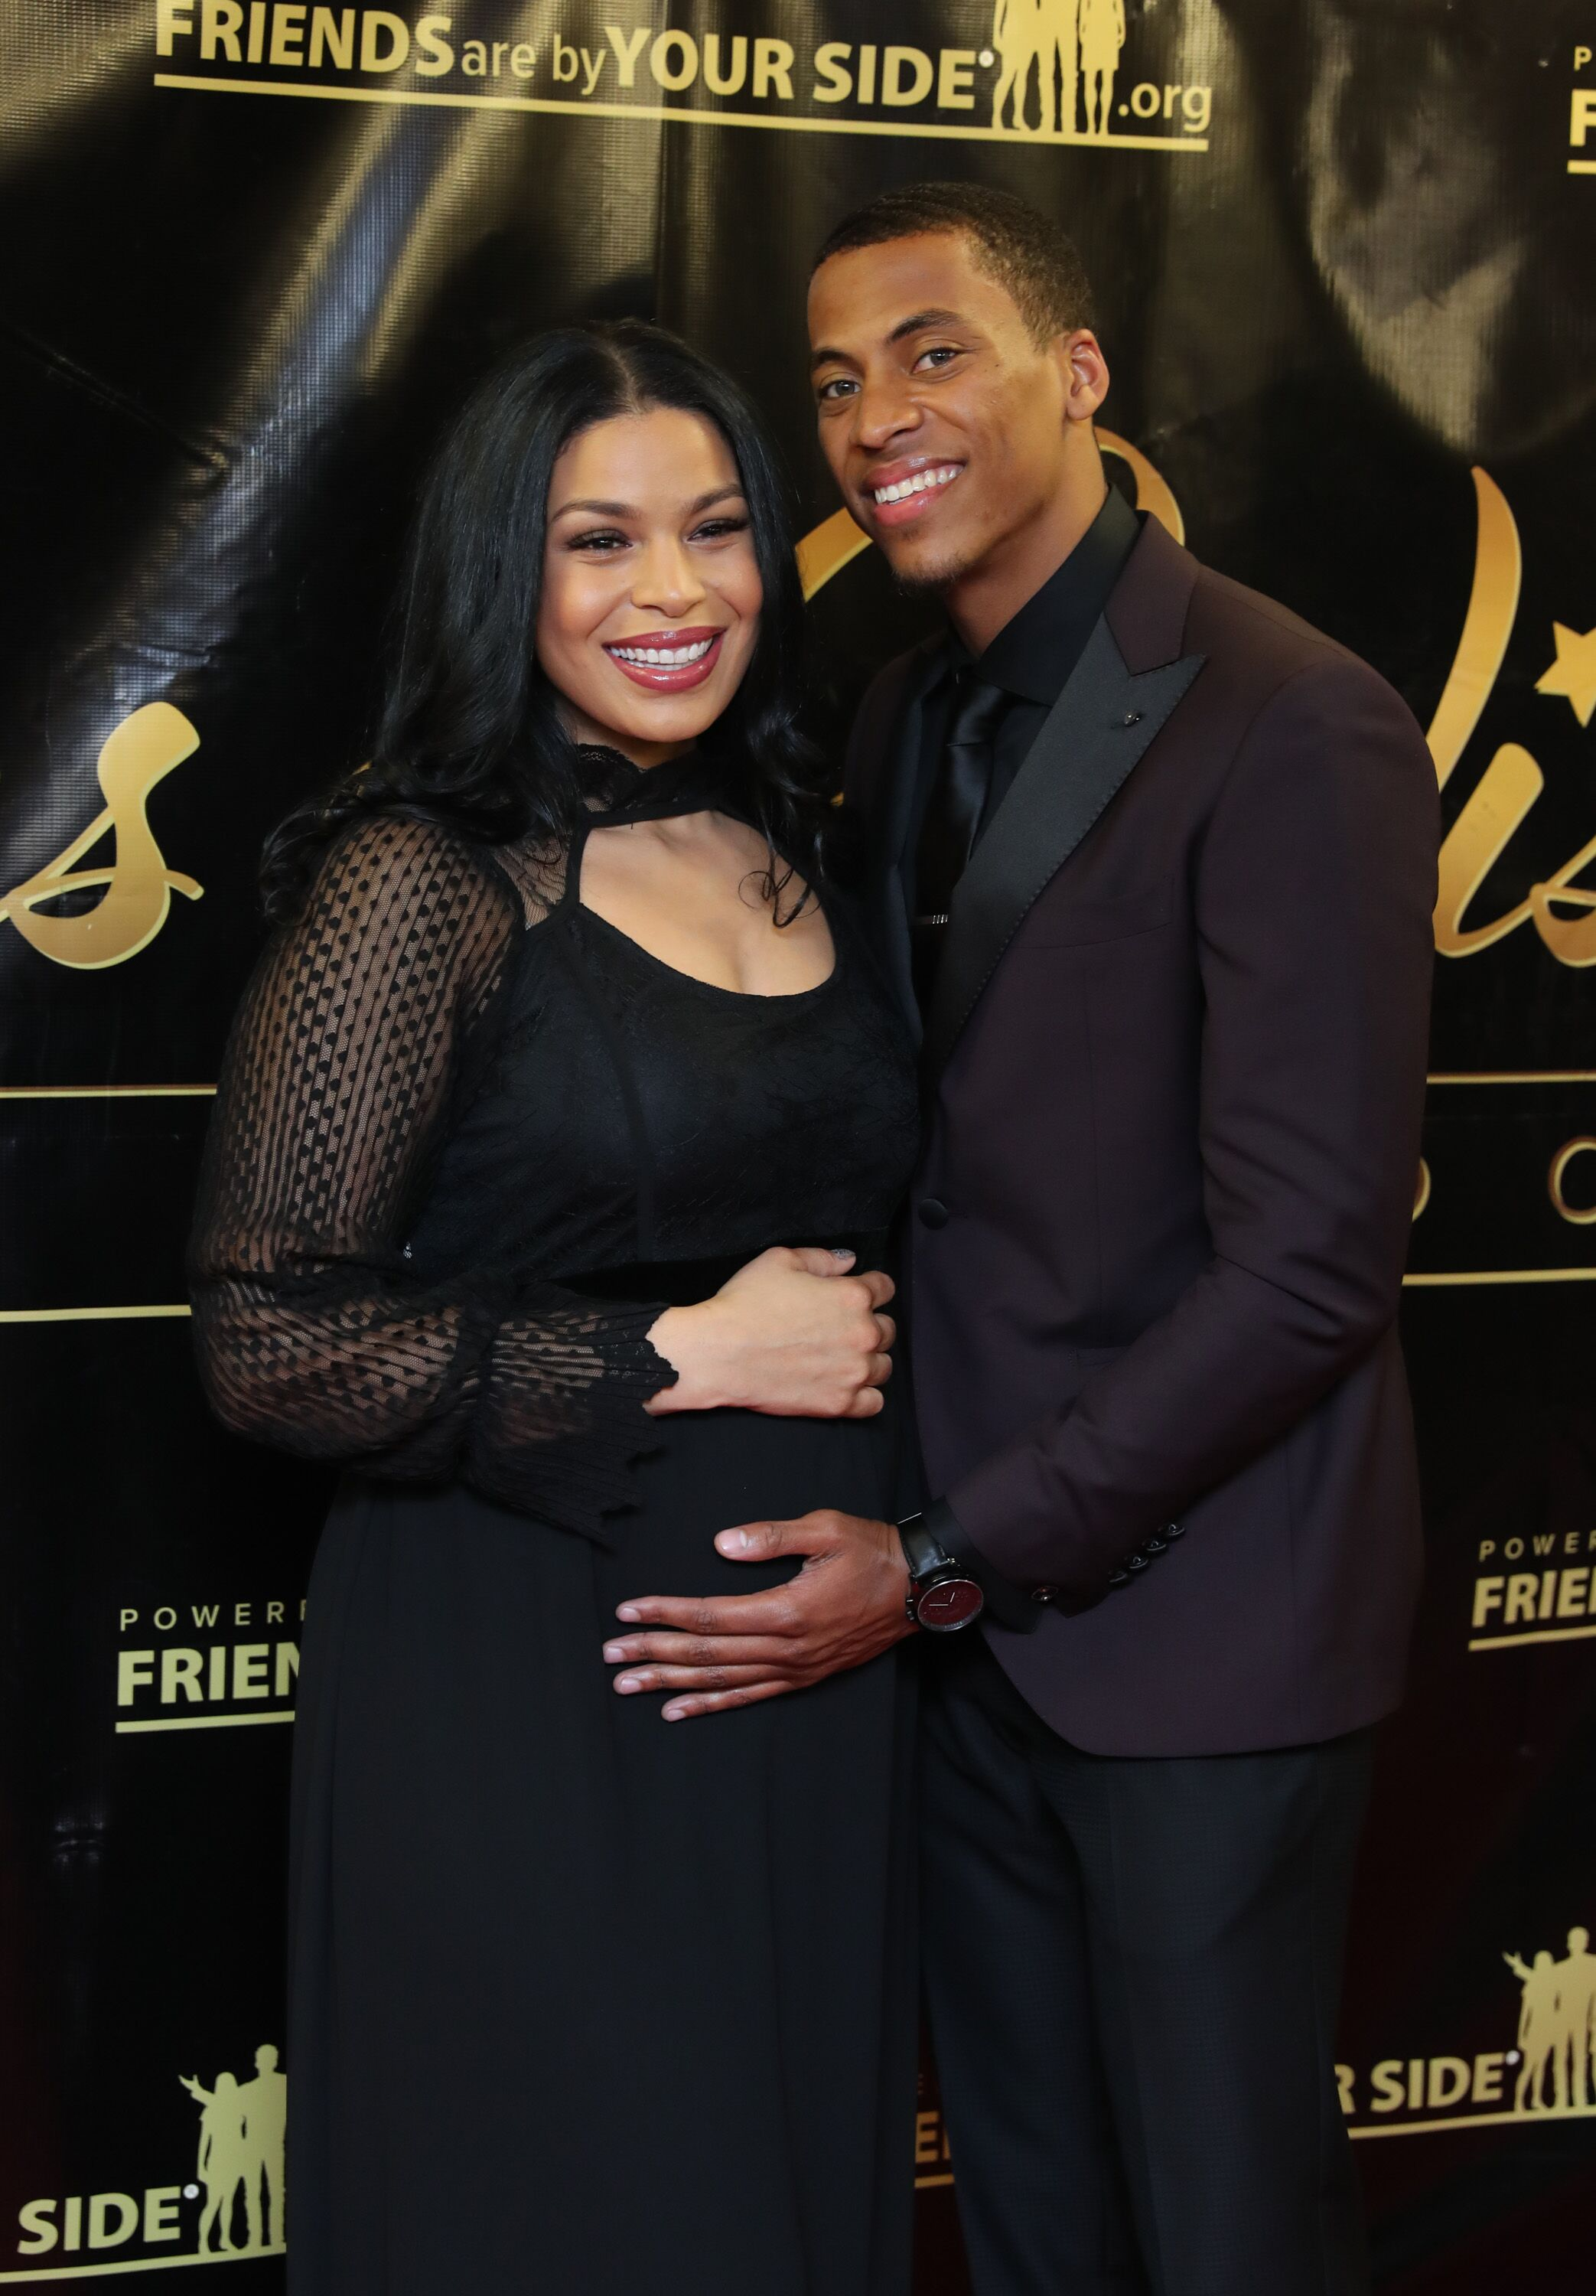 Jordin Sparks and husband Dana Isaiah attend the 2017 One Night With The Stars Benefit at The Theater at Madison Square Garden on December 4, 2017 in New York City. | Source: Getty Images